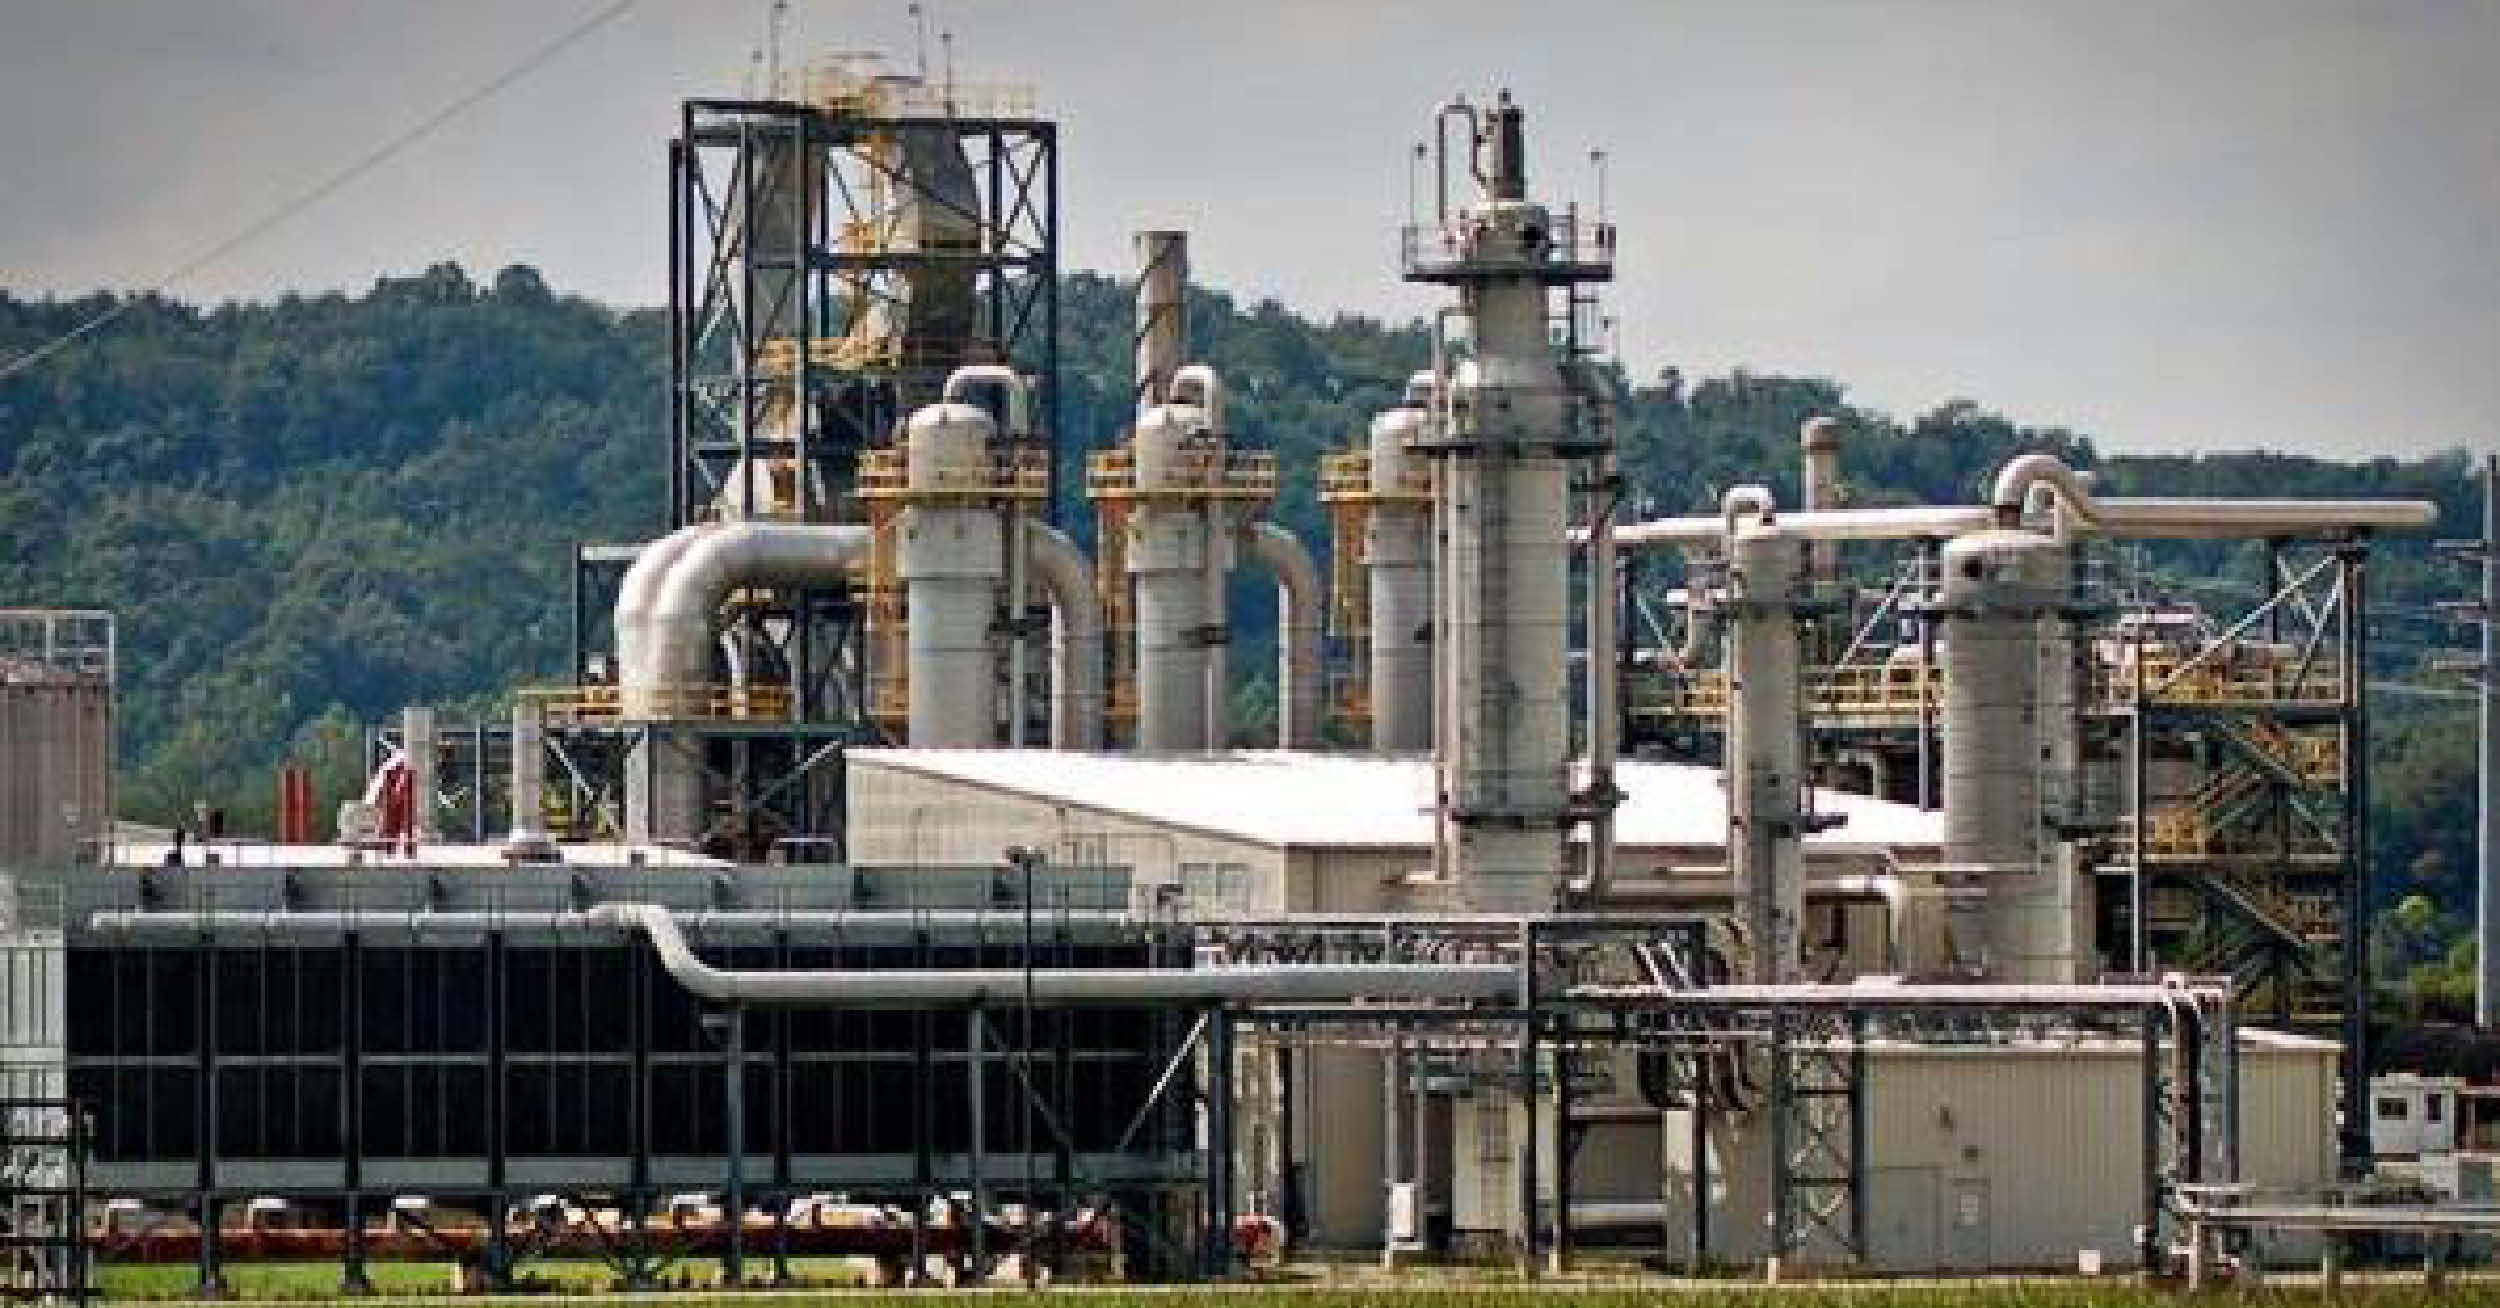 Biorefinery, Renewable Chemical, and Biobased Product